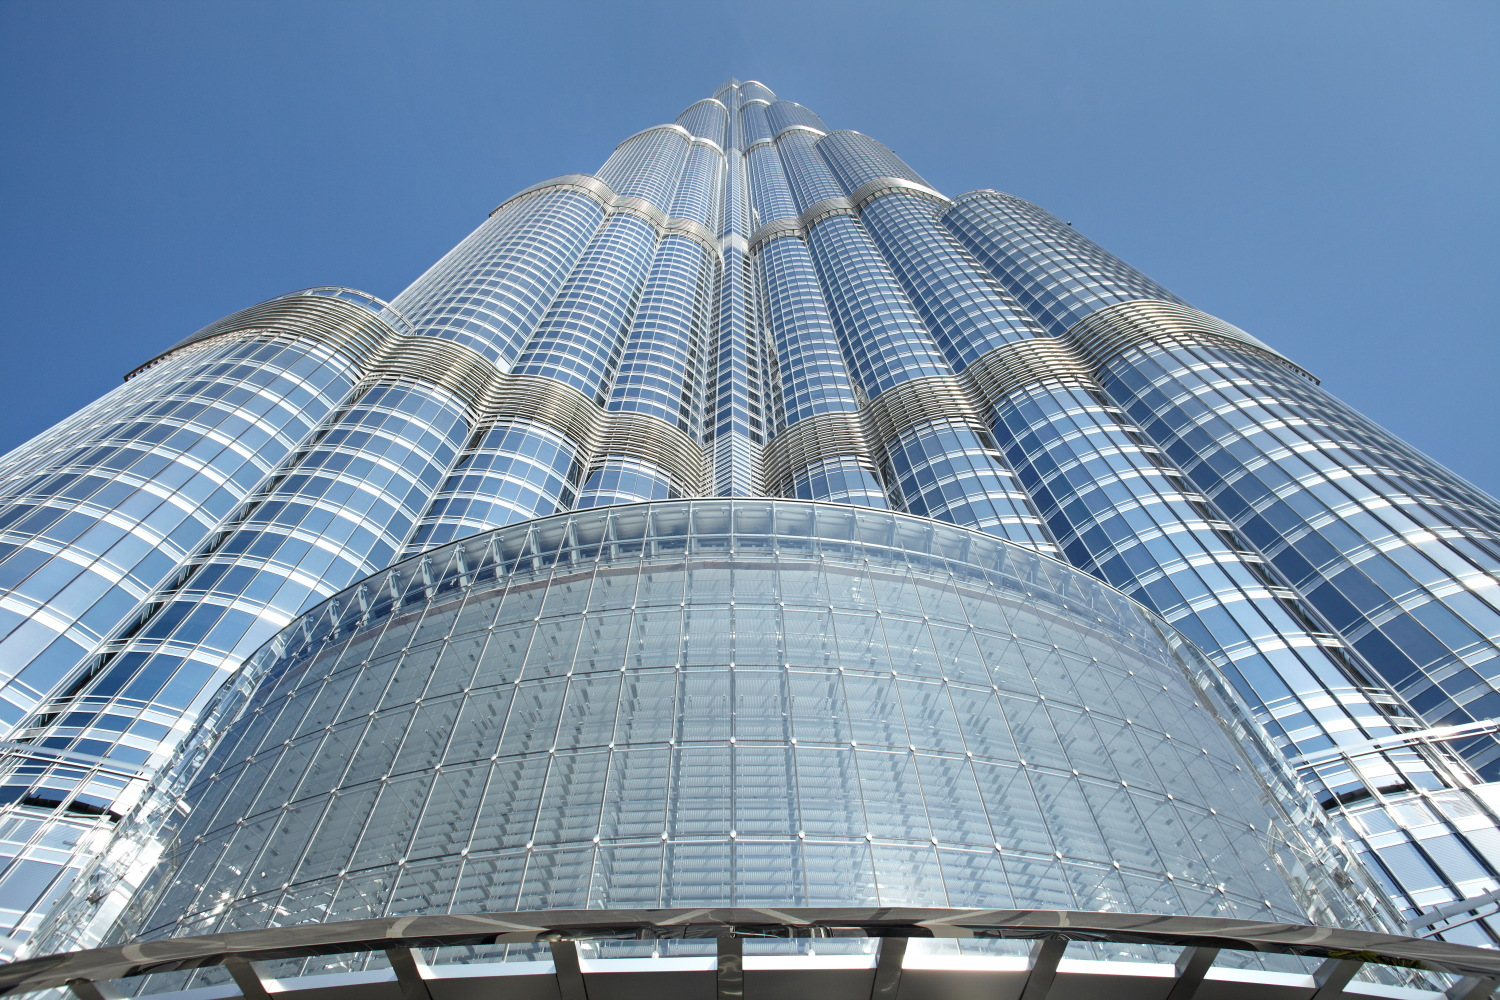 Burj Khalifa | Dubai | Tallest Building in the World | Guardian Glass | Glass Facade | Super Tall Buildings | IGS Mag